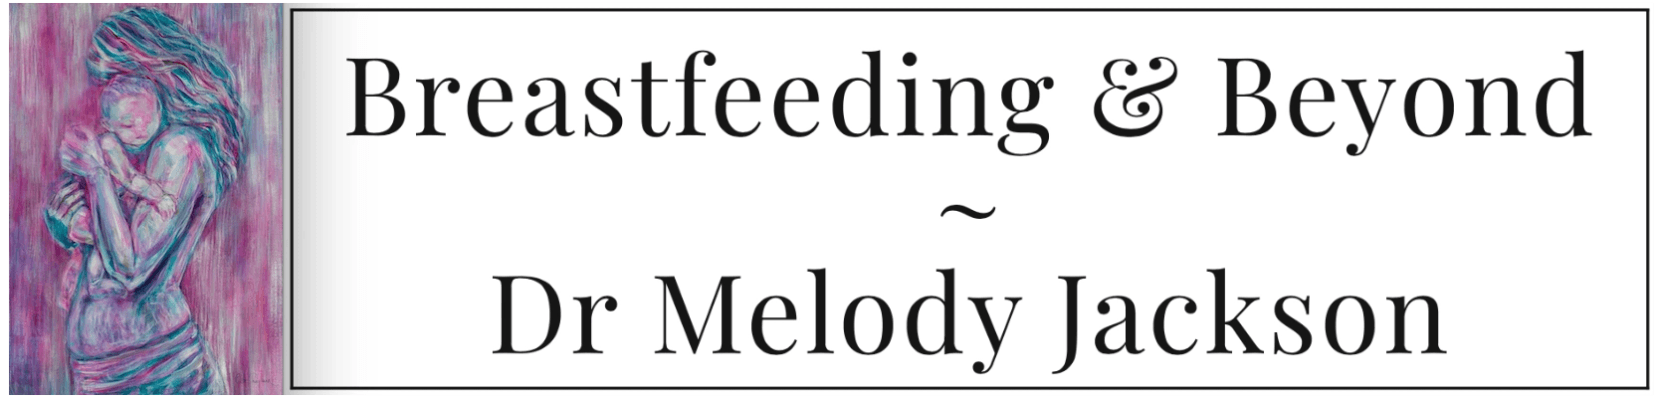 Breastfeeding & Beyond ~ Dr Melody Jackson